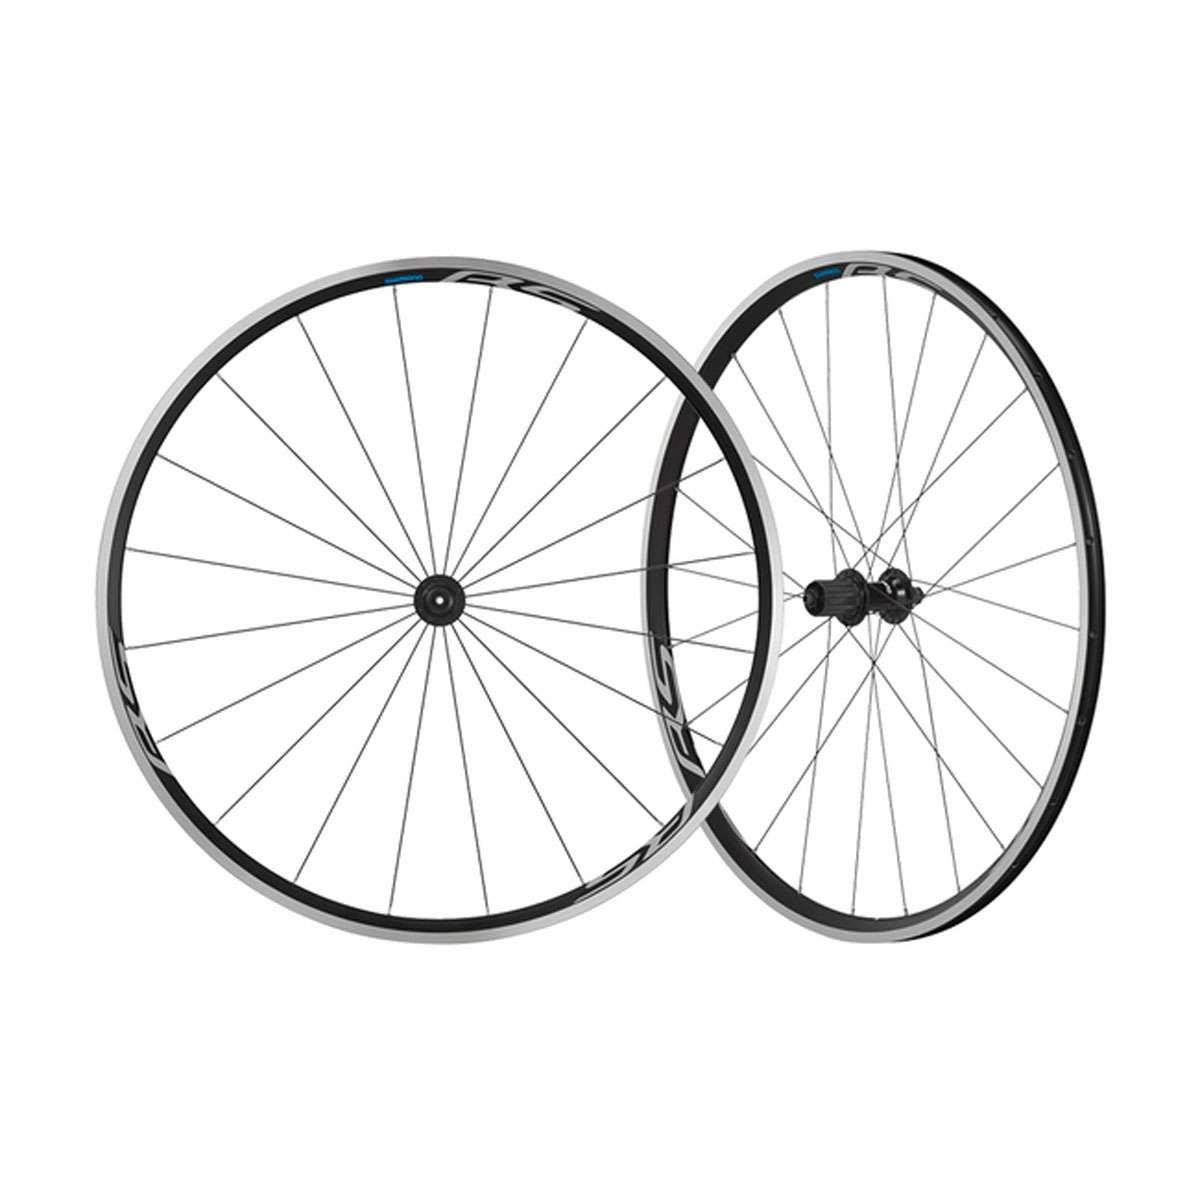 Shimano WH-RS100 Clincher Road Bicycle Wheelset - EWHRS100FREB